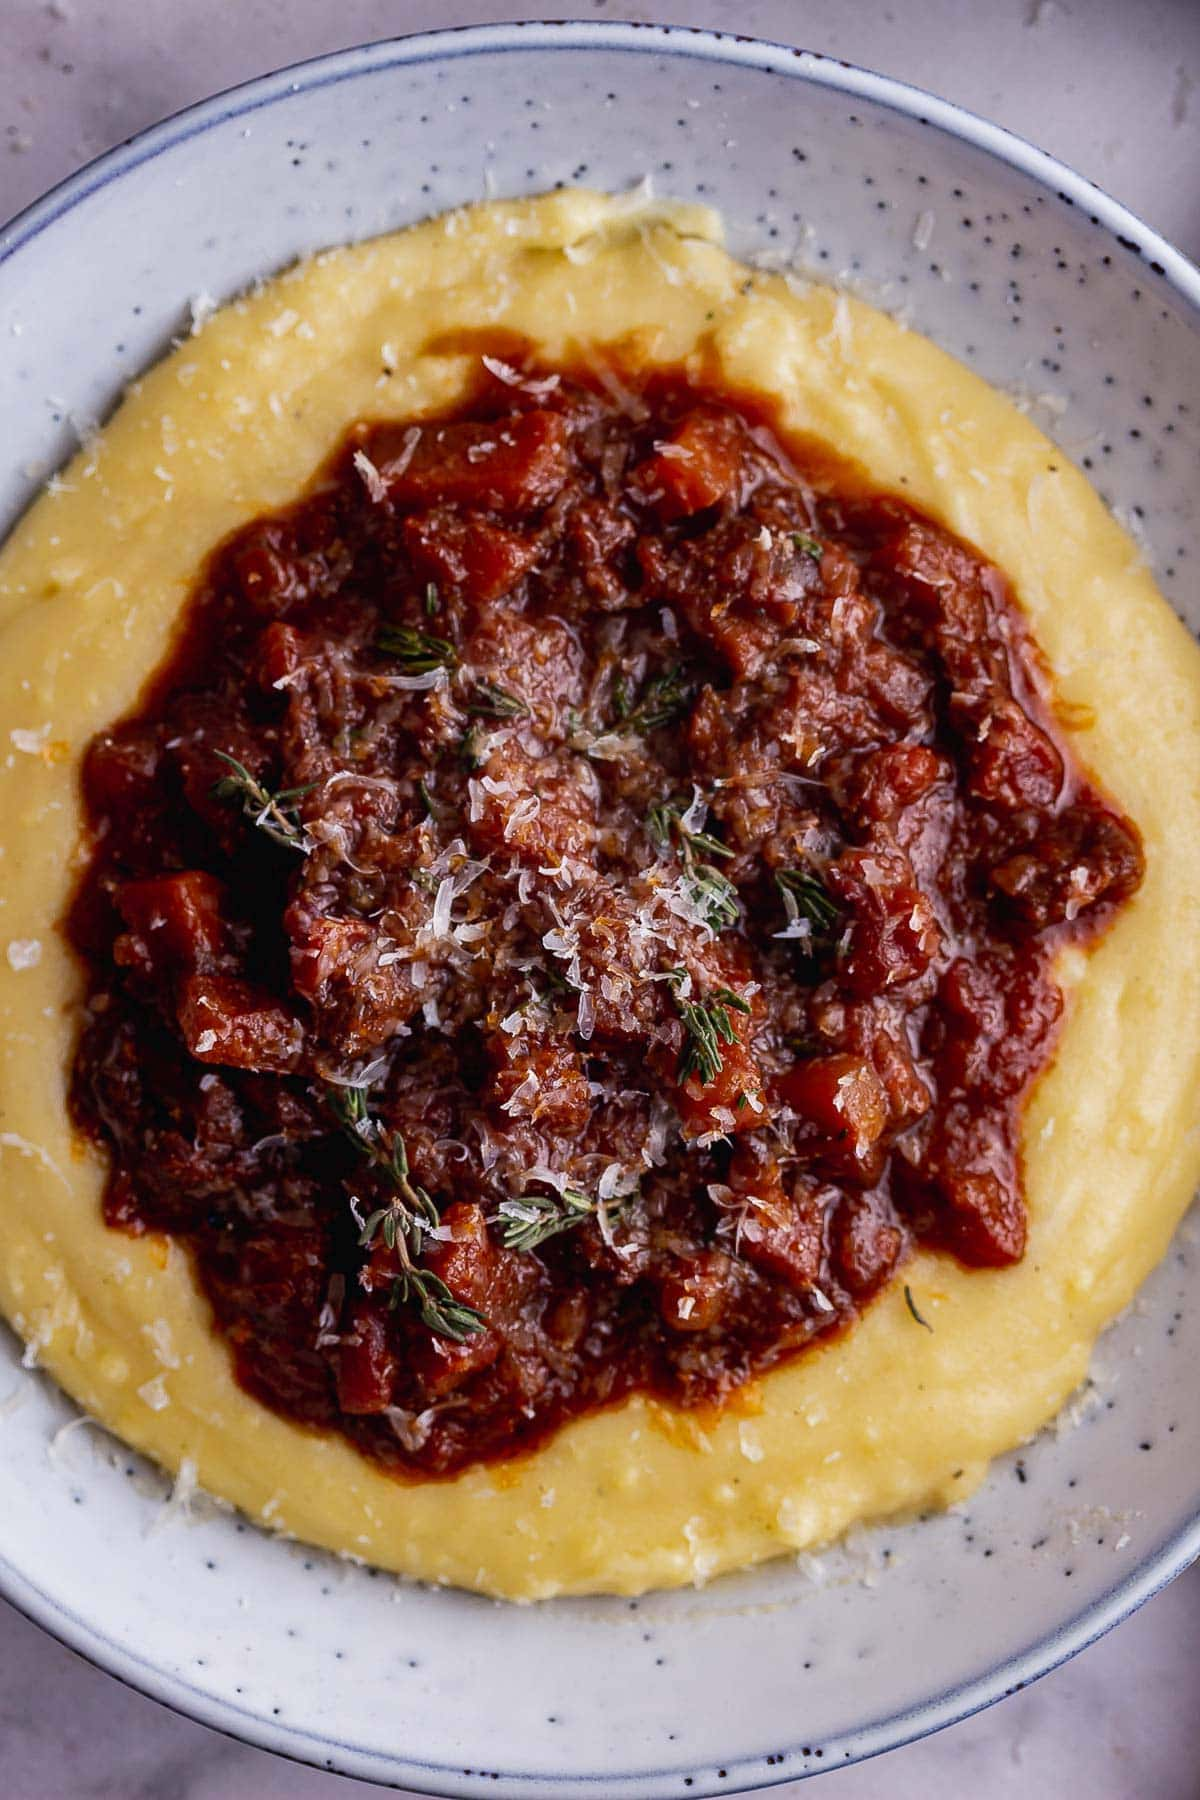 Overhead shot of beef bolognese sauce on polenta